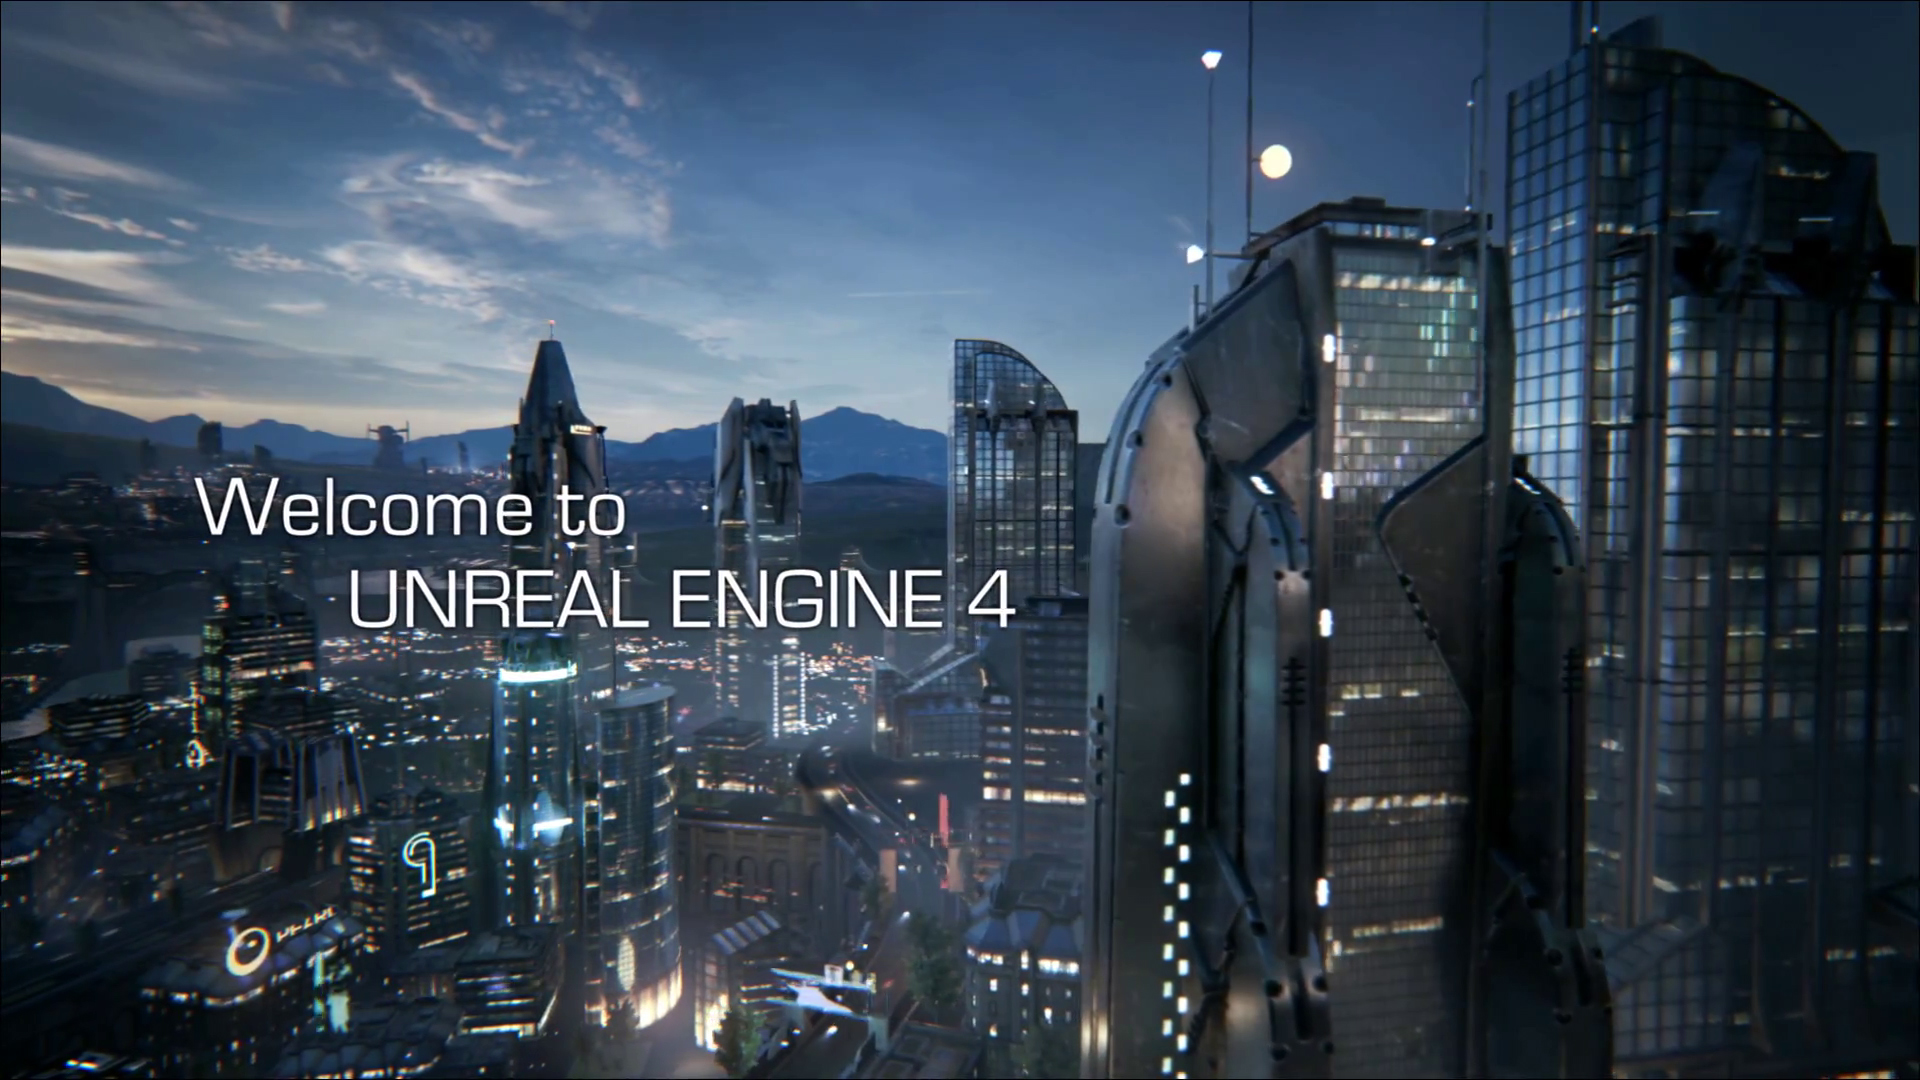 Unreal Engine 4 now available as $19/month subscription with 5% royalty